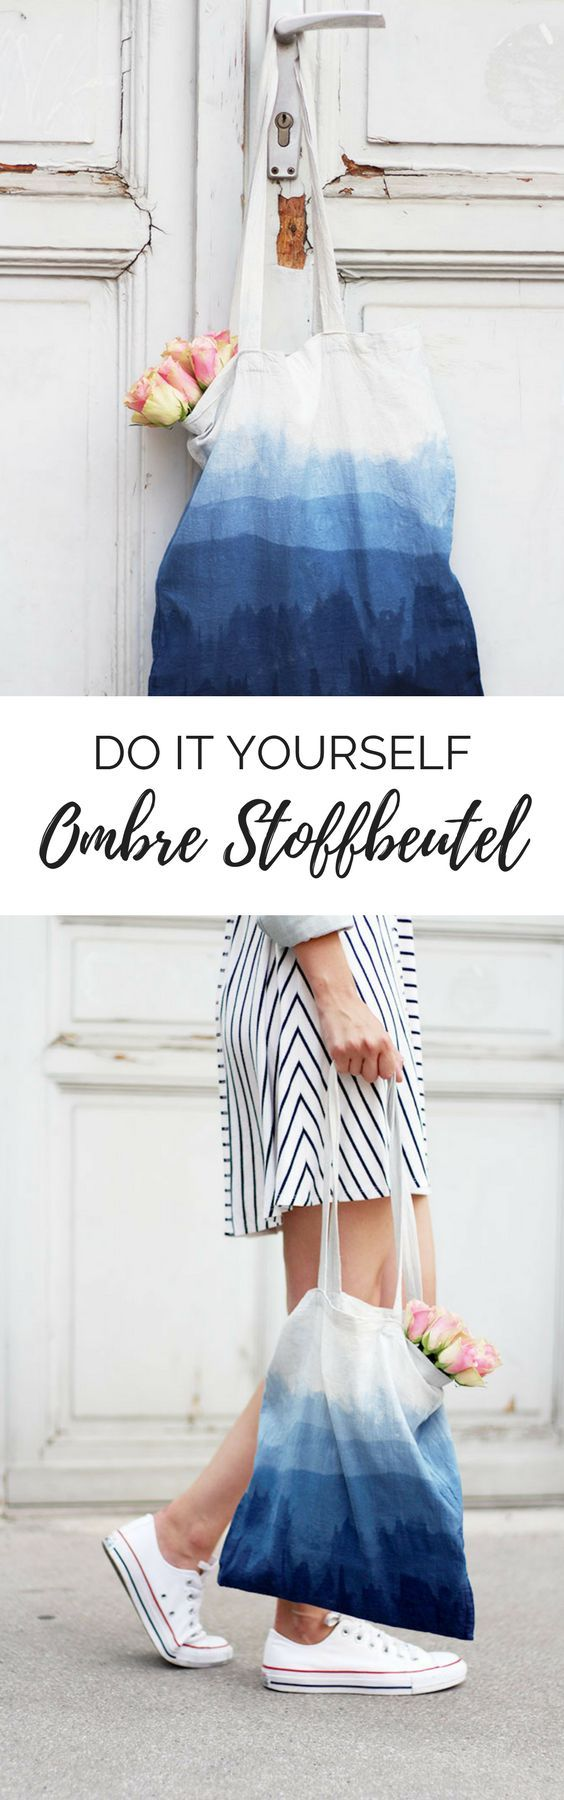 do it yourself ombre stoffbeutel selbermachen diy stoffe f rben bedrucken pinterest. Black Bedroom Furniture Sets. Home Design Ideas